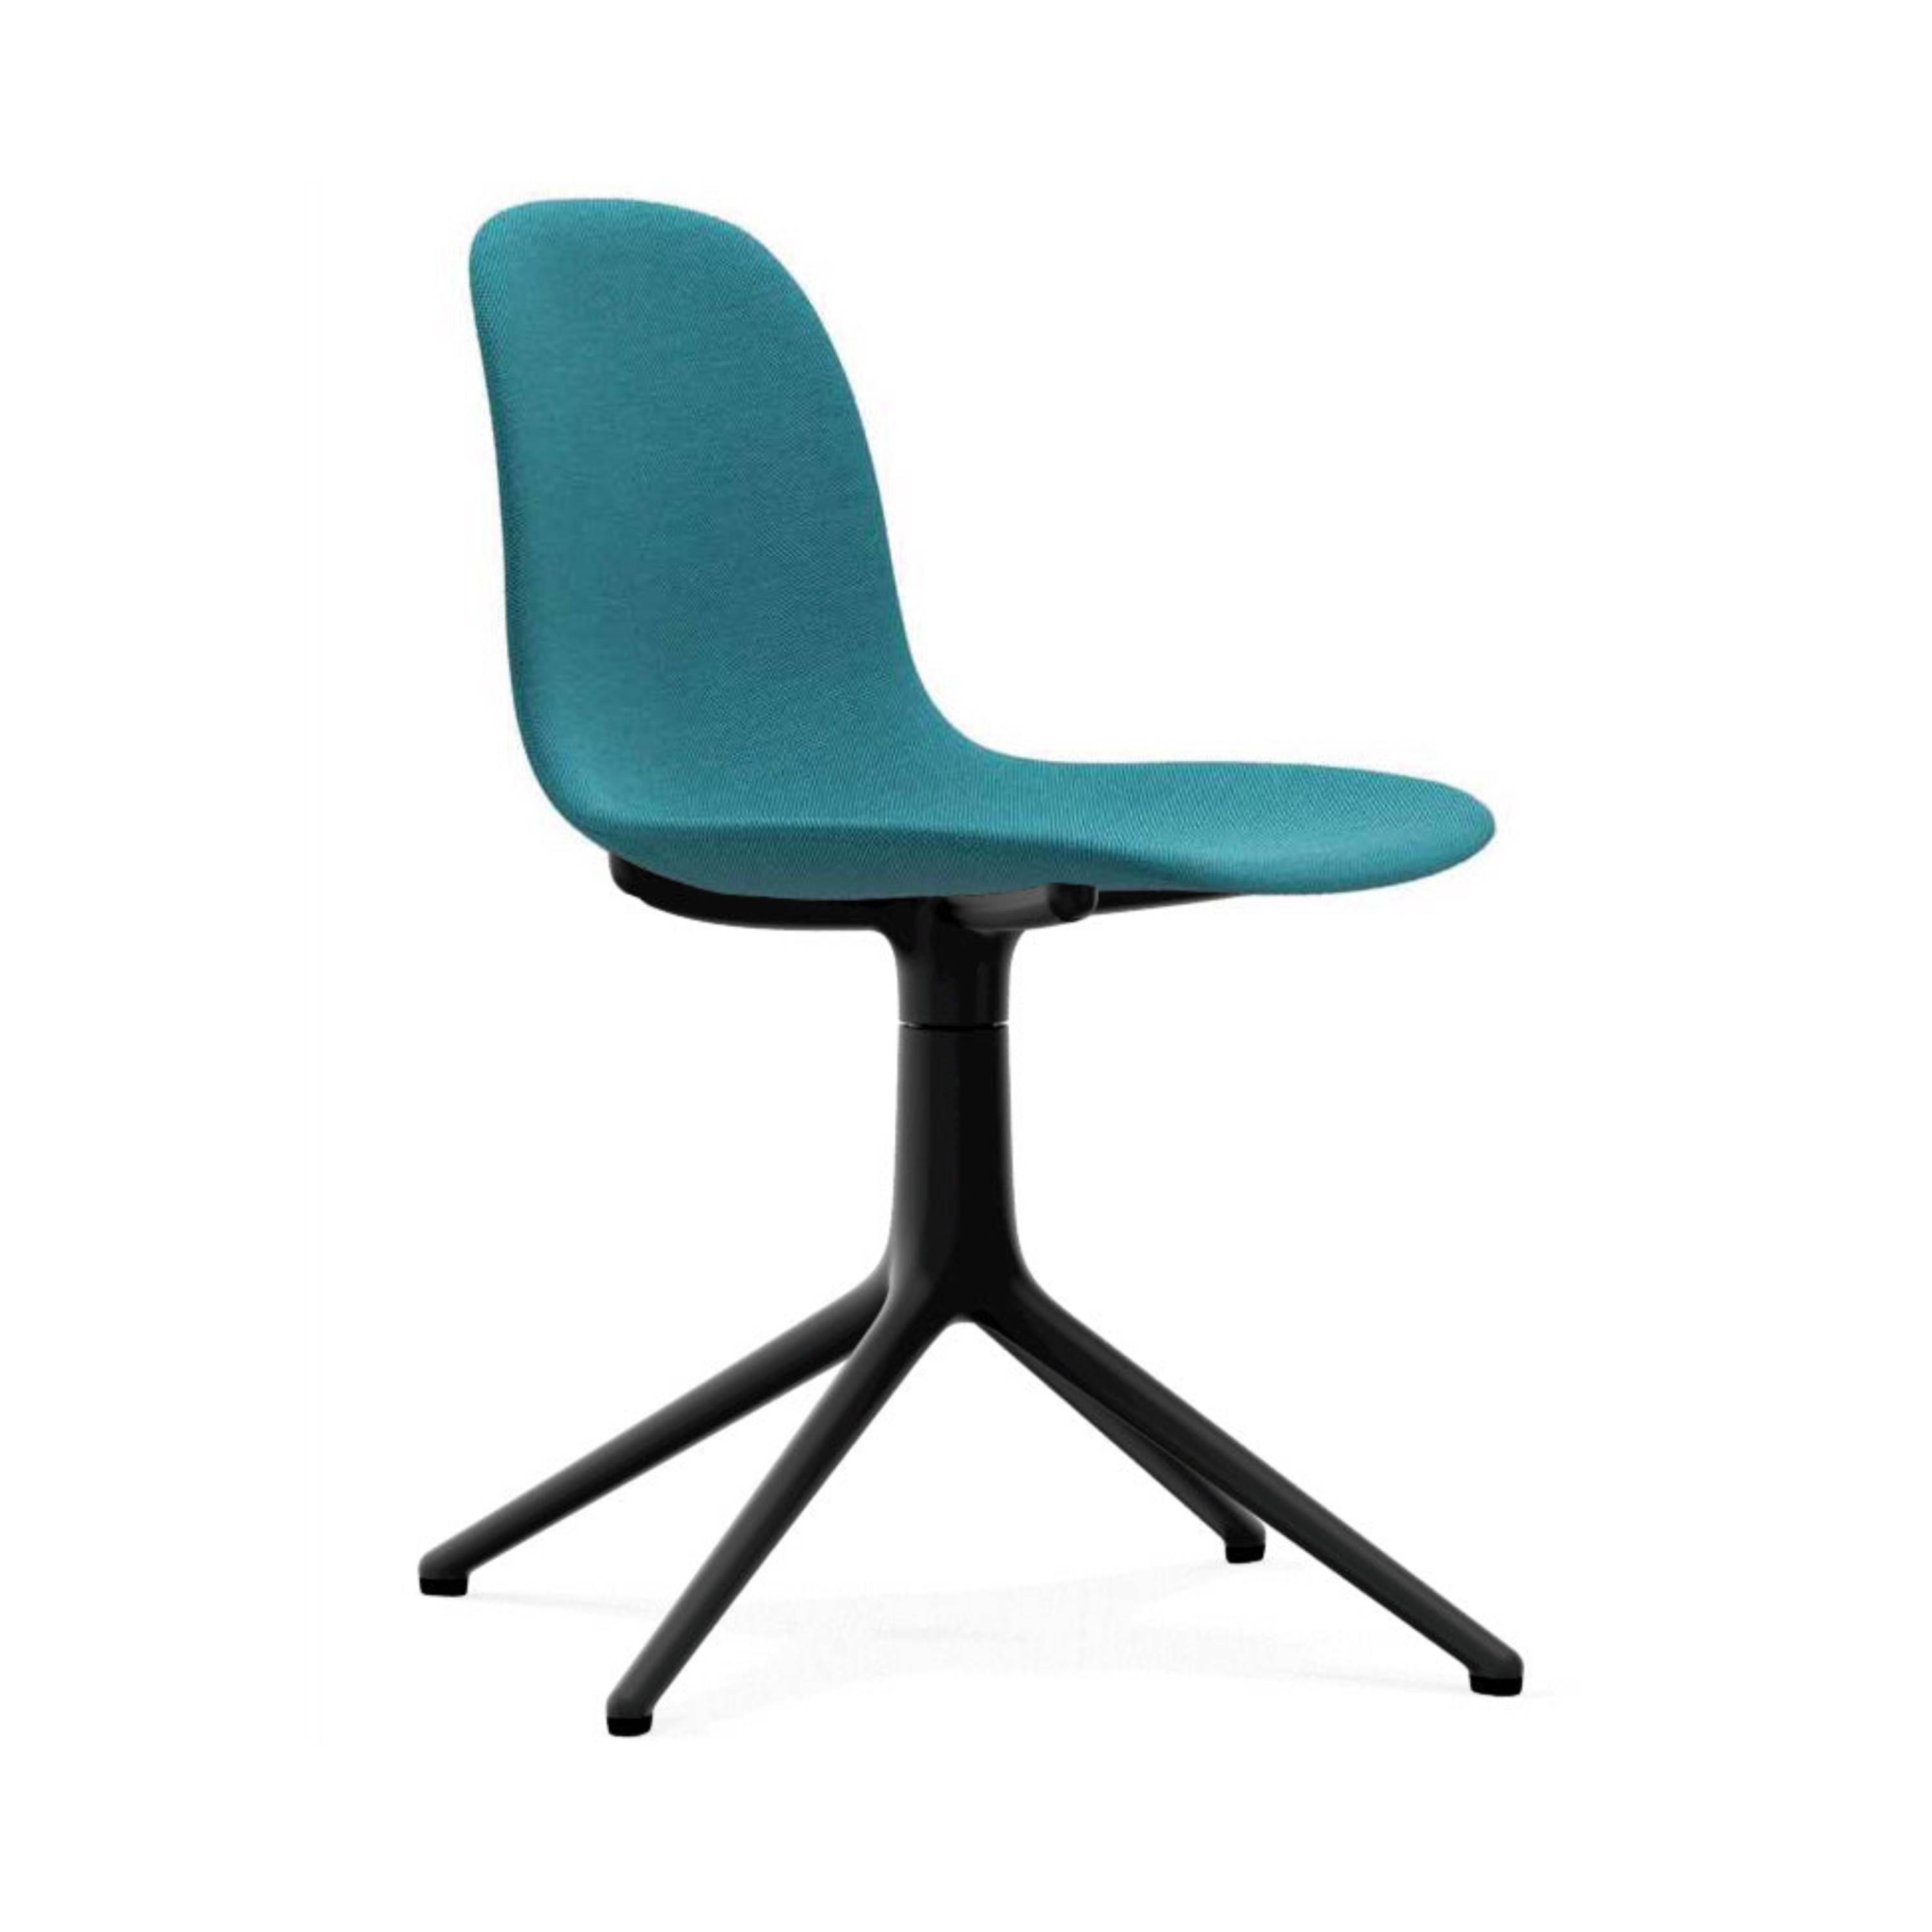 Form Chair: Swivel Upholstered